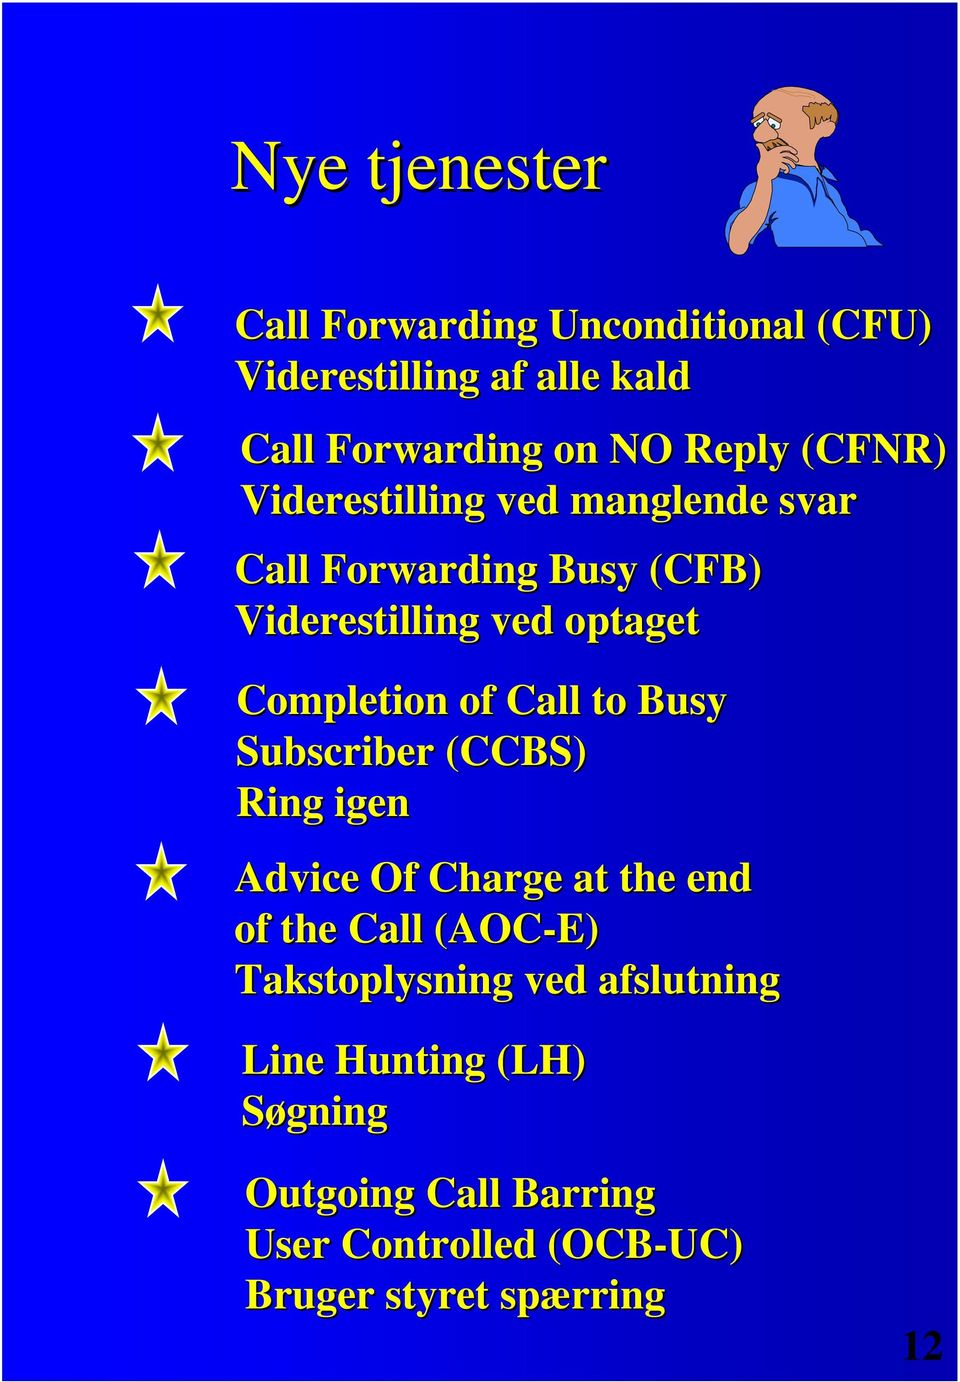 of Call to Busy Subscriber (CCBS) Ring igen Advice Of Charge at the end of the Call (AOC-E) Takstoplysning